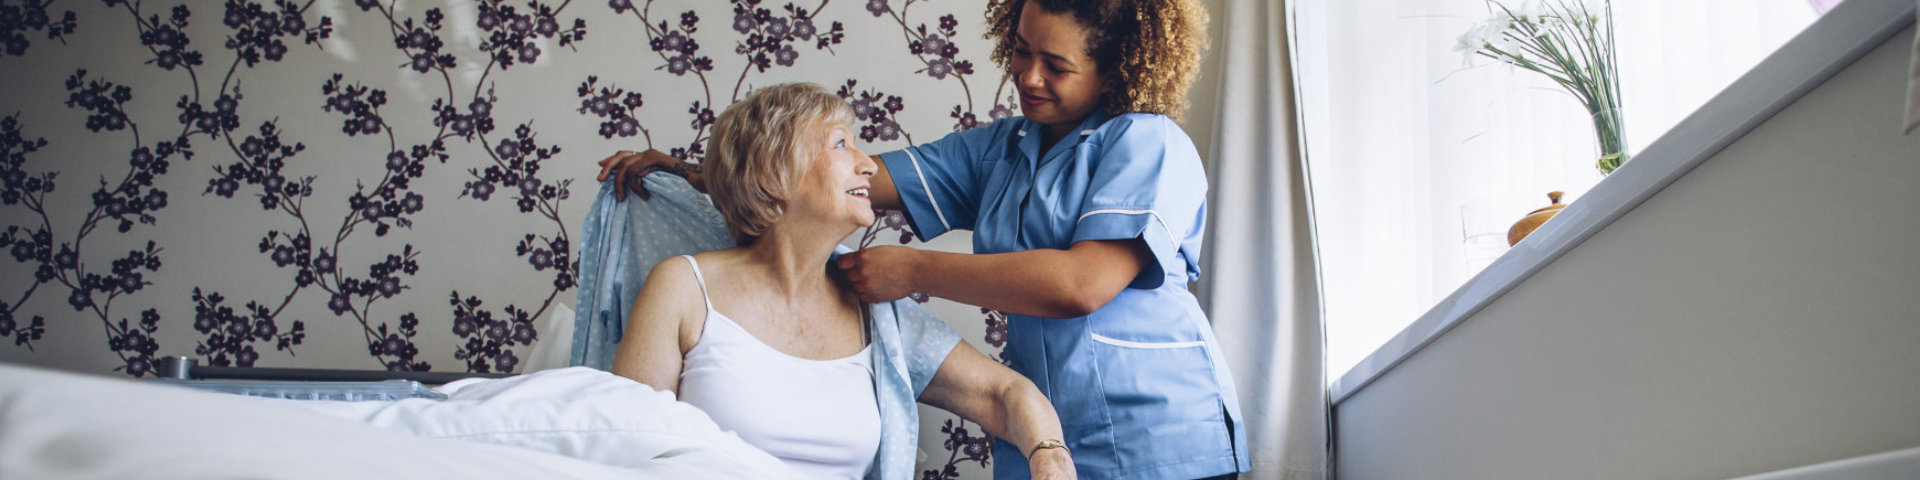 caregiver helping a senior woman put on clothes